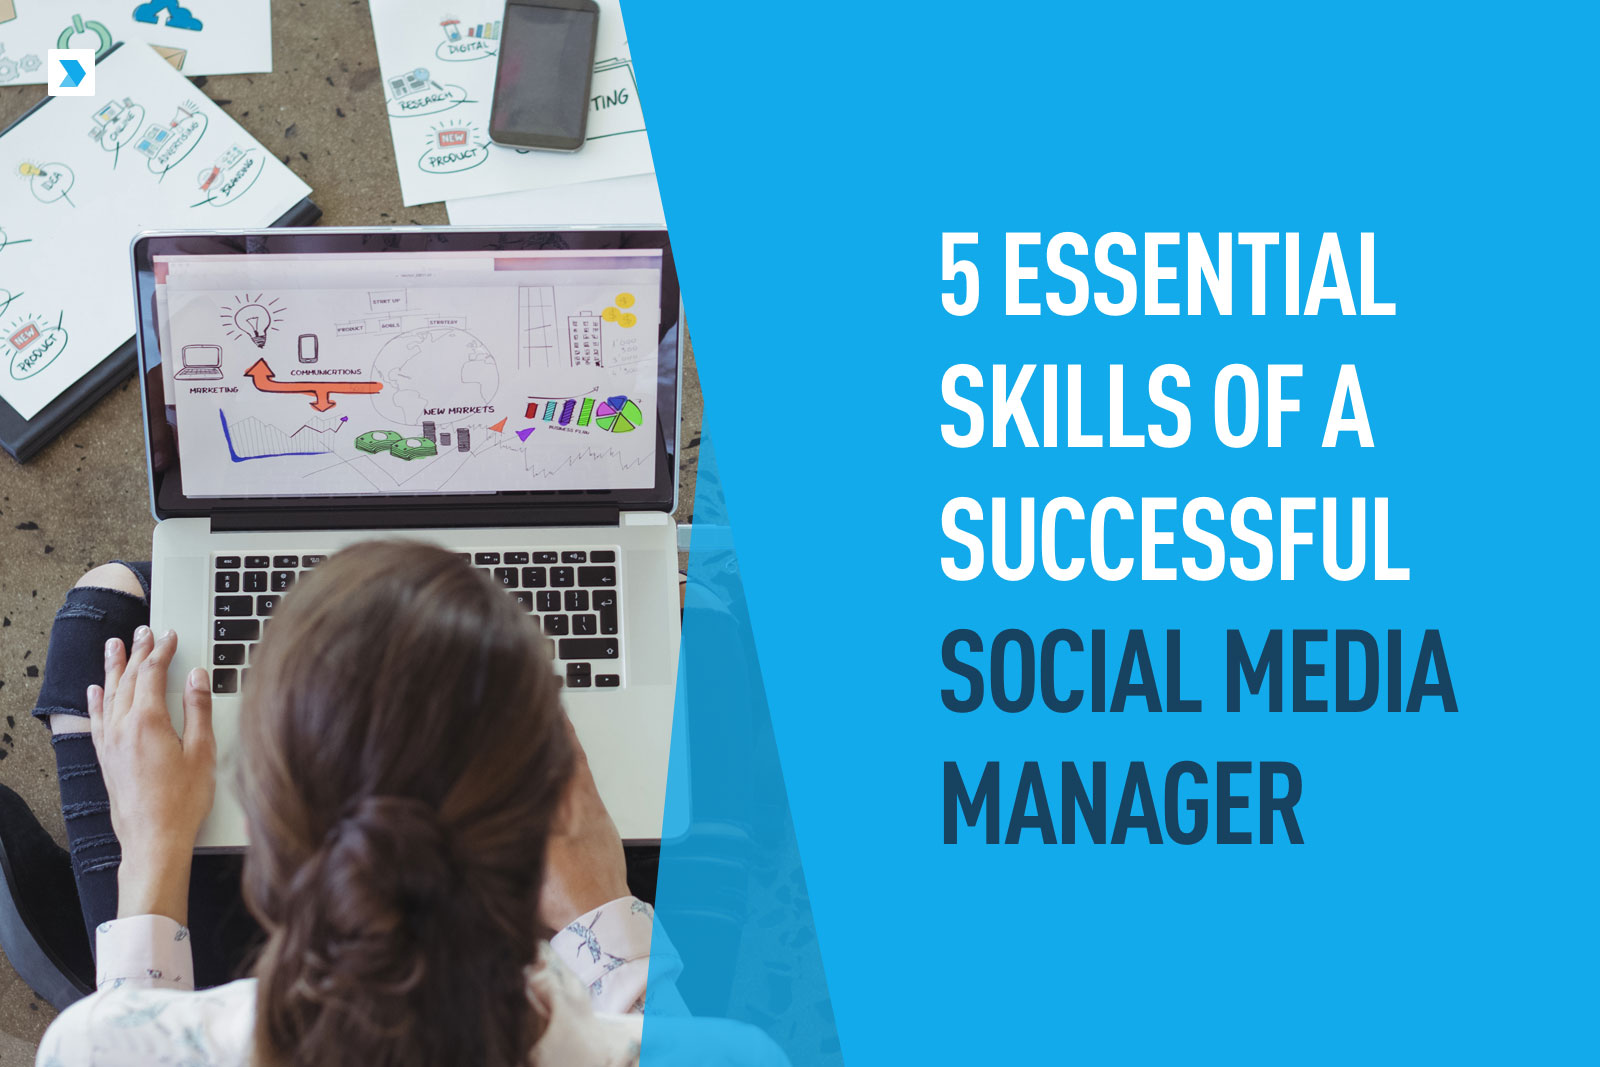 5 Essential Skills of a Successful Social Media Manager